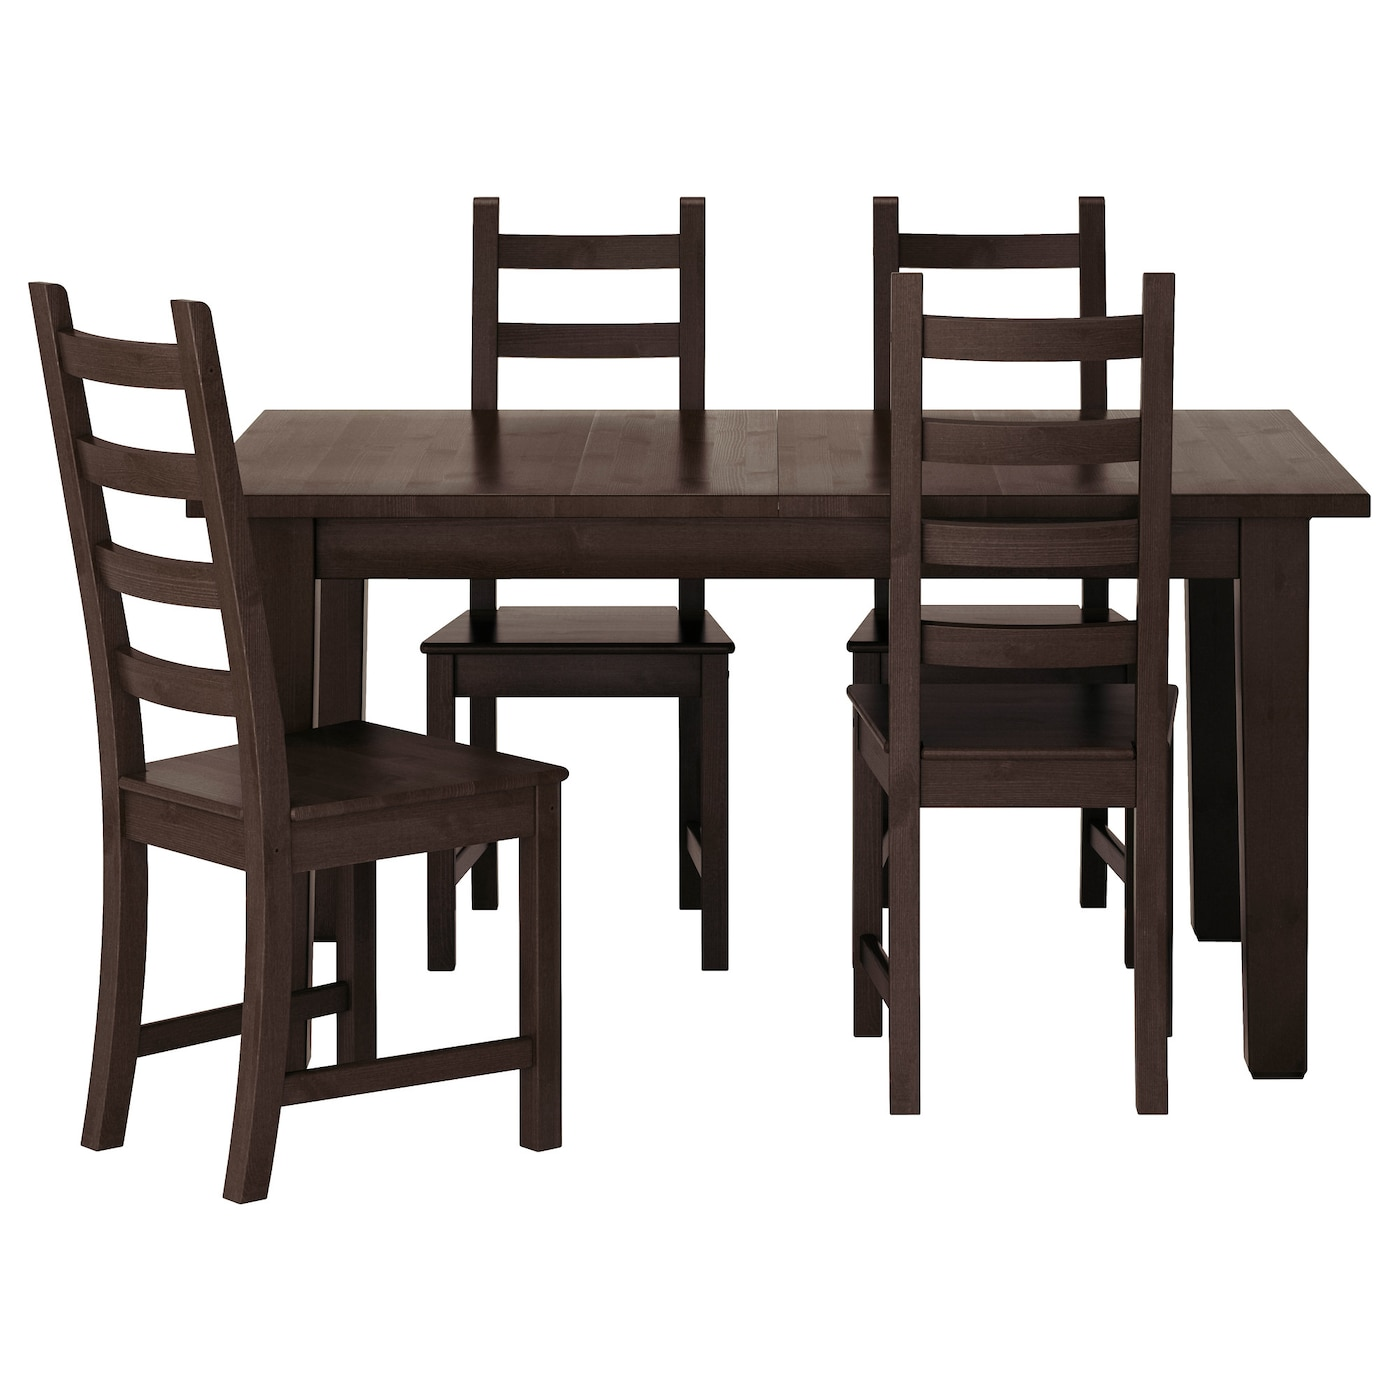 createfullcircl table chairs on oak dining fresh sets photos bjursta extending room and ikea set morespoons